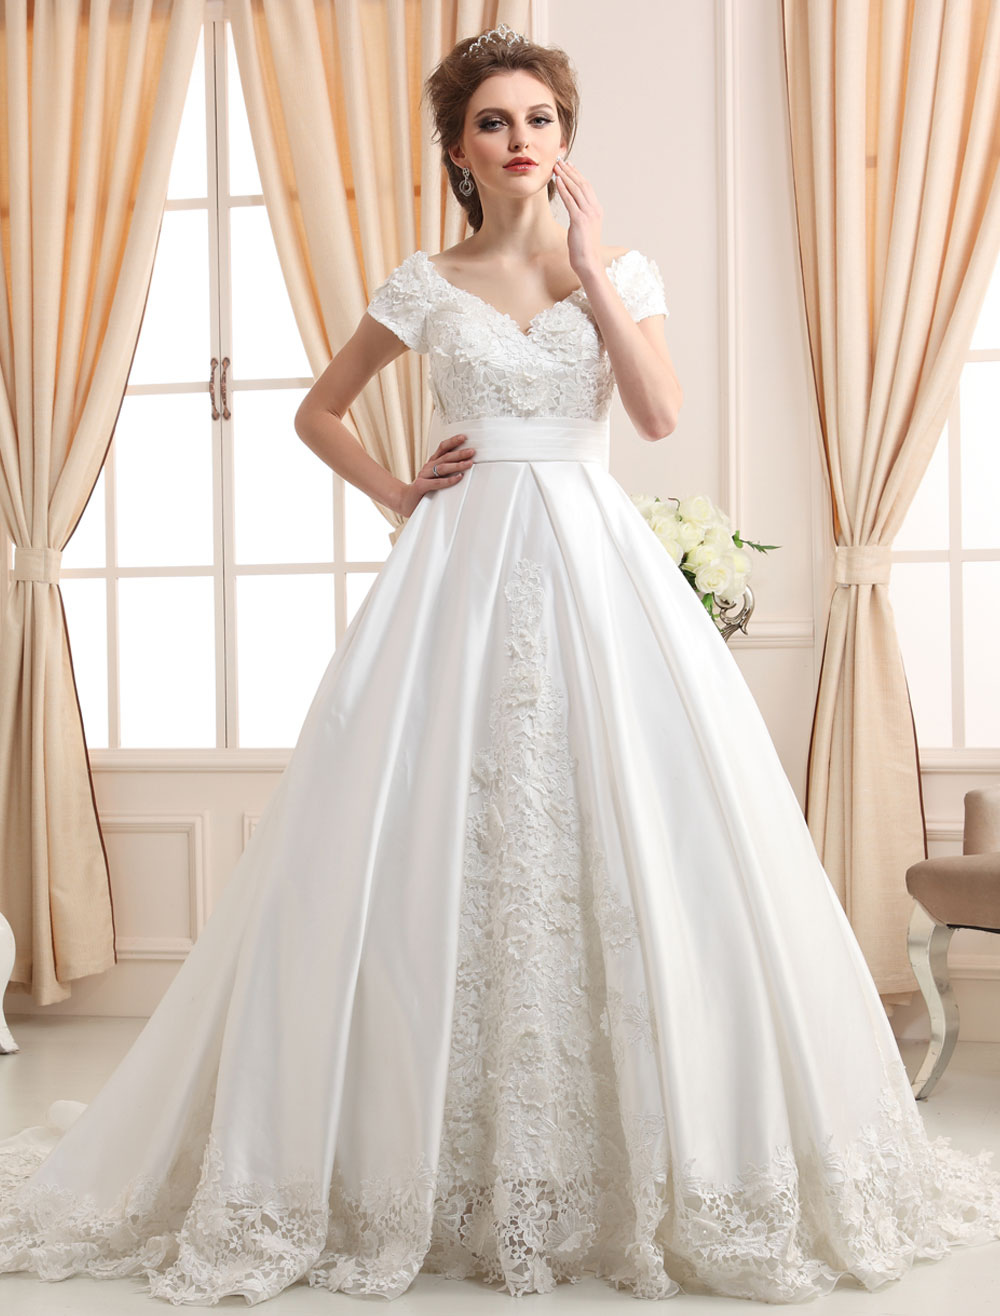 Chapel Train Ivory Wedding Dress For Bride with Off-The-Shoulder Bow